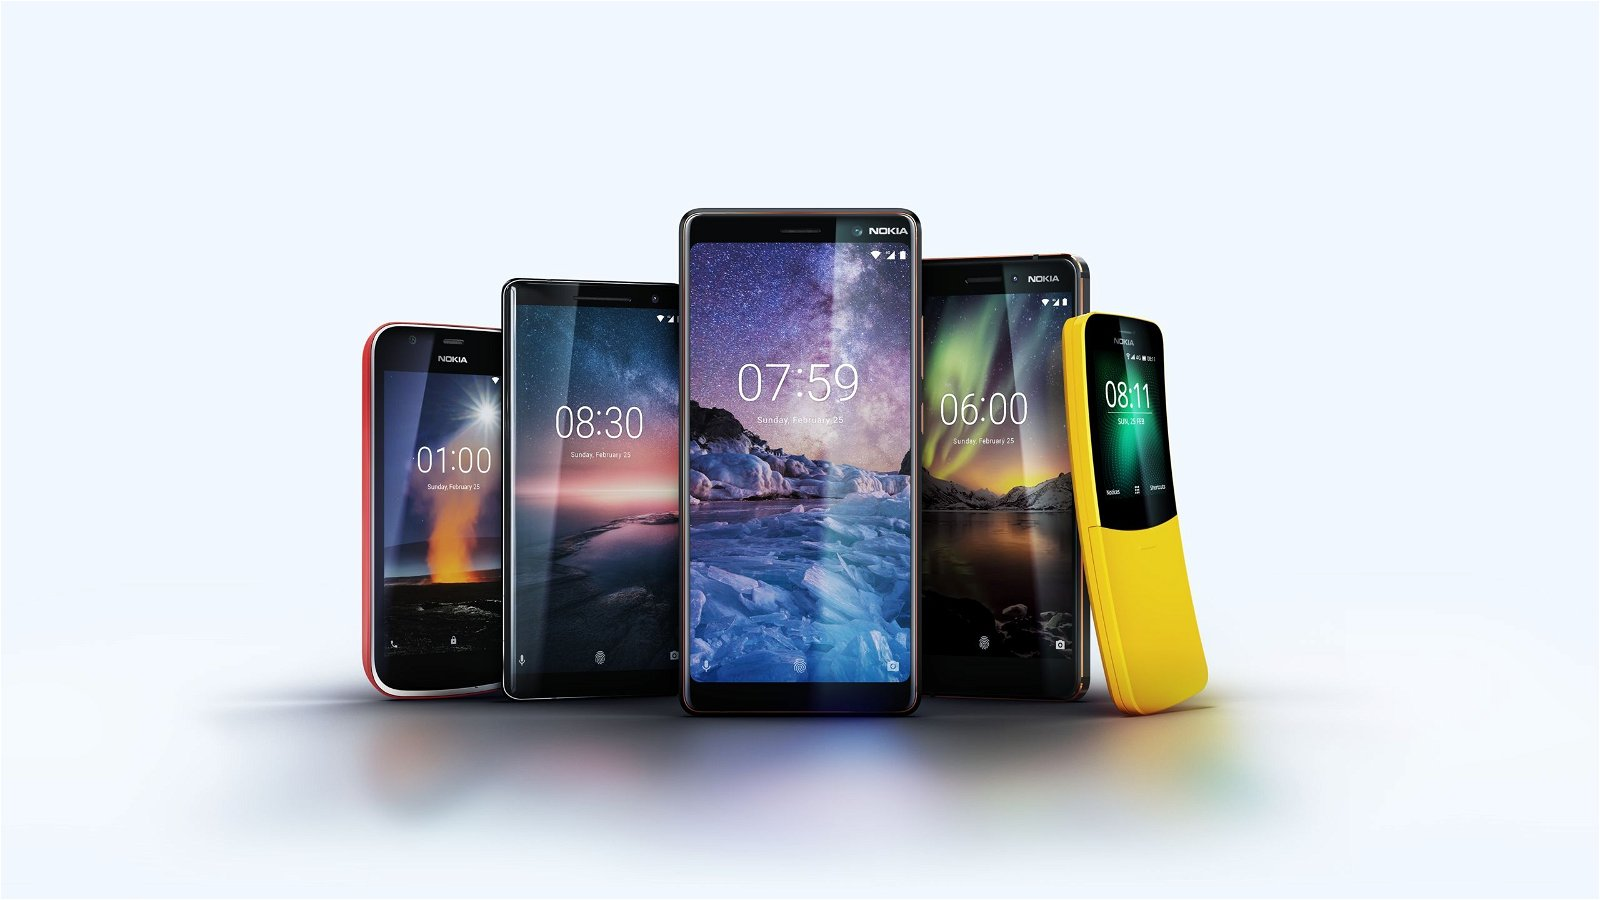 HMD Global Launches 5 New Phones - Nokia MWC 2018 6